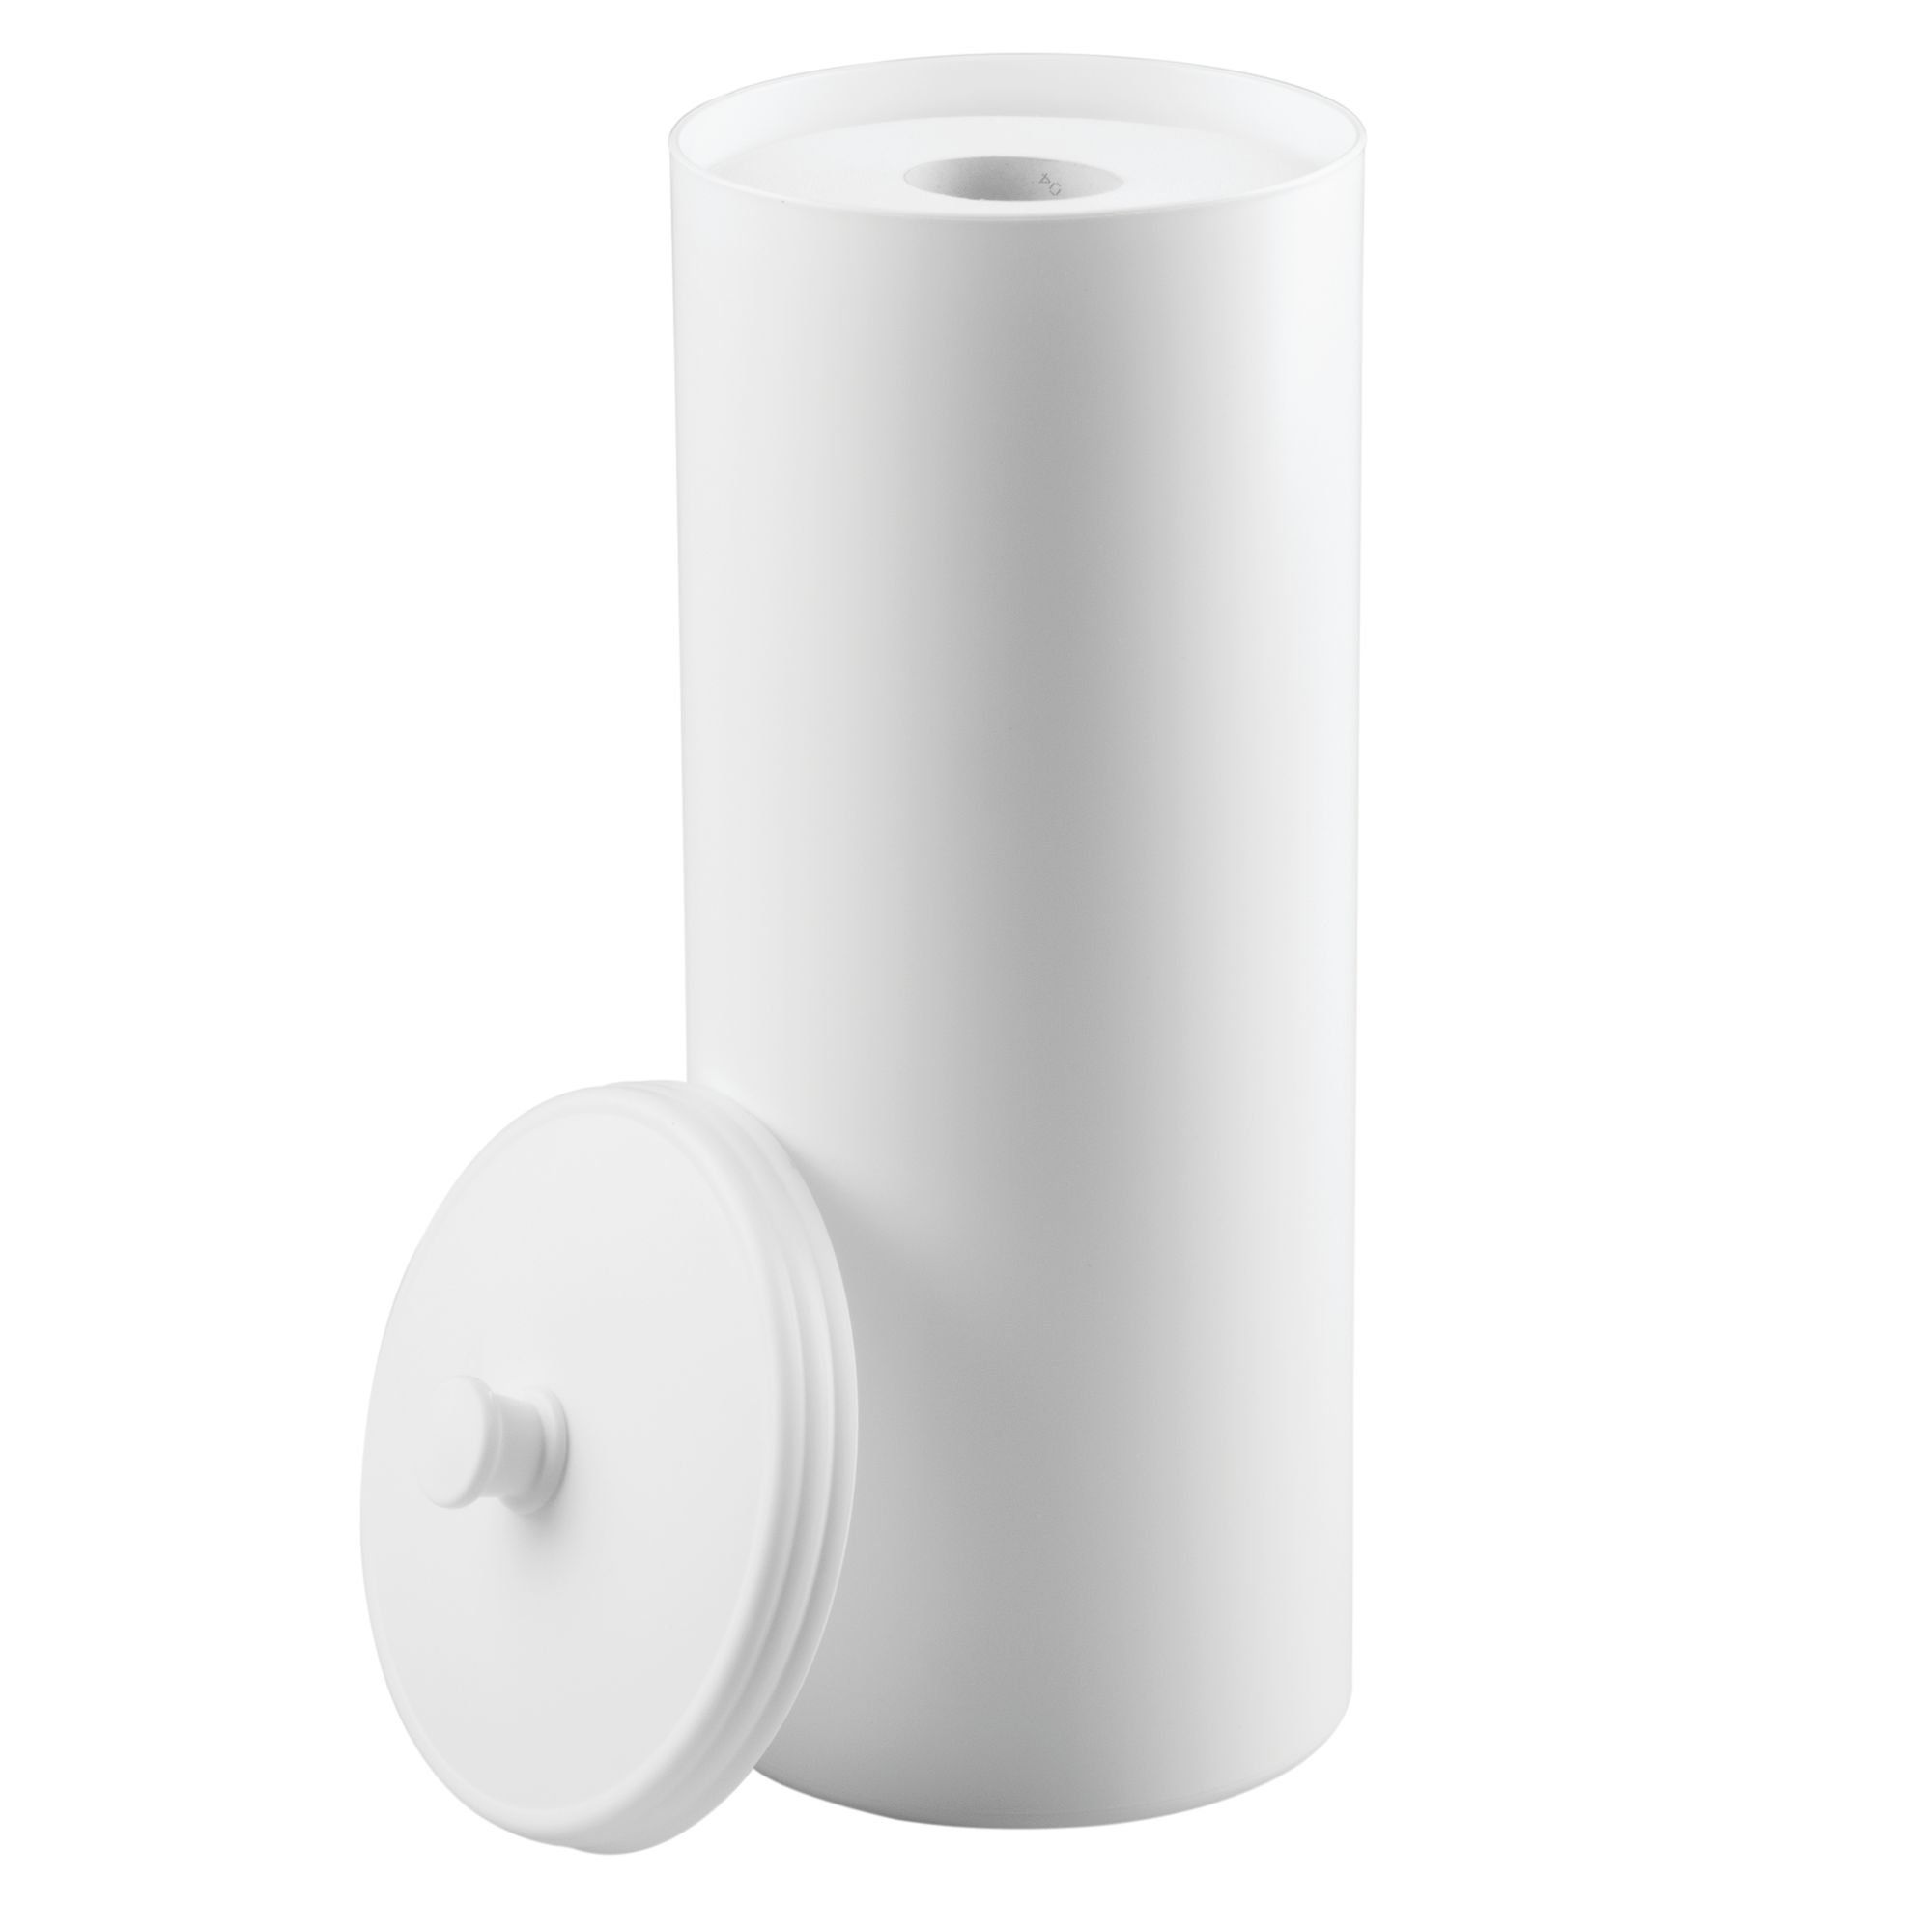 mDesign Plastic Free Standing Toilet Paper Holder Canister with Storage for 3 Extra Rolls of Toilet Tissue - for Bathroom/Powder Room - Holds Mega Rolls - White